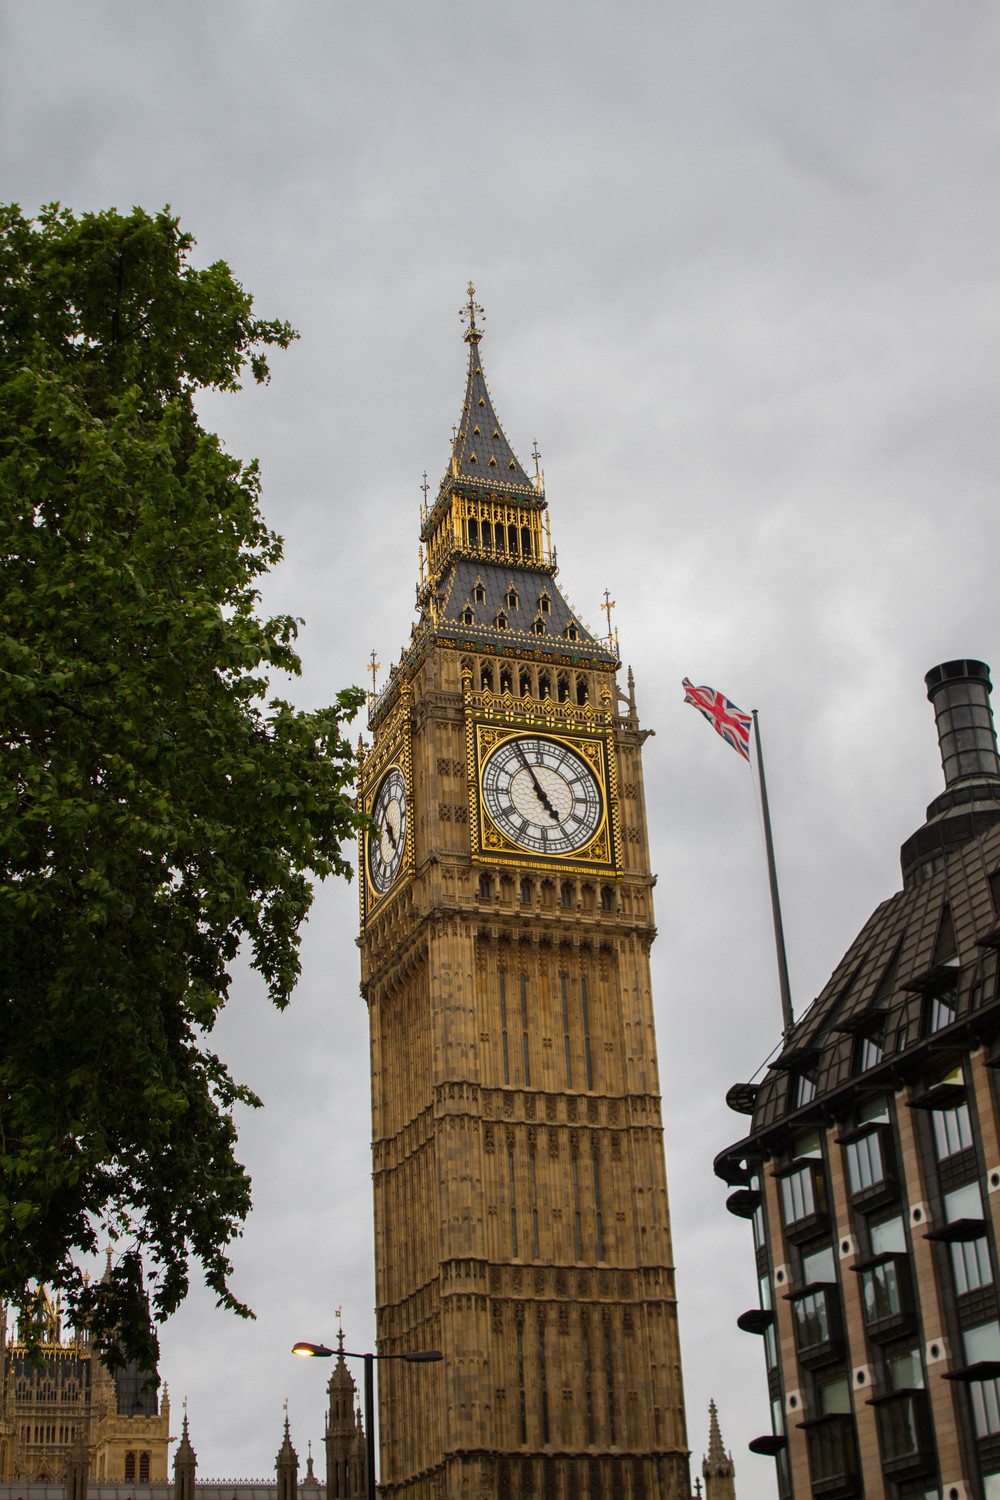 London Time - Big Ben | Four Threads